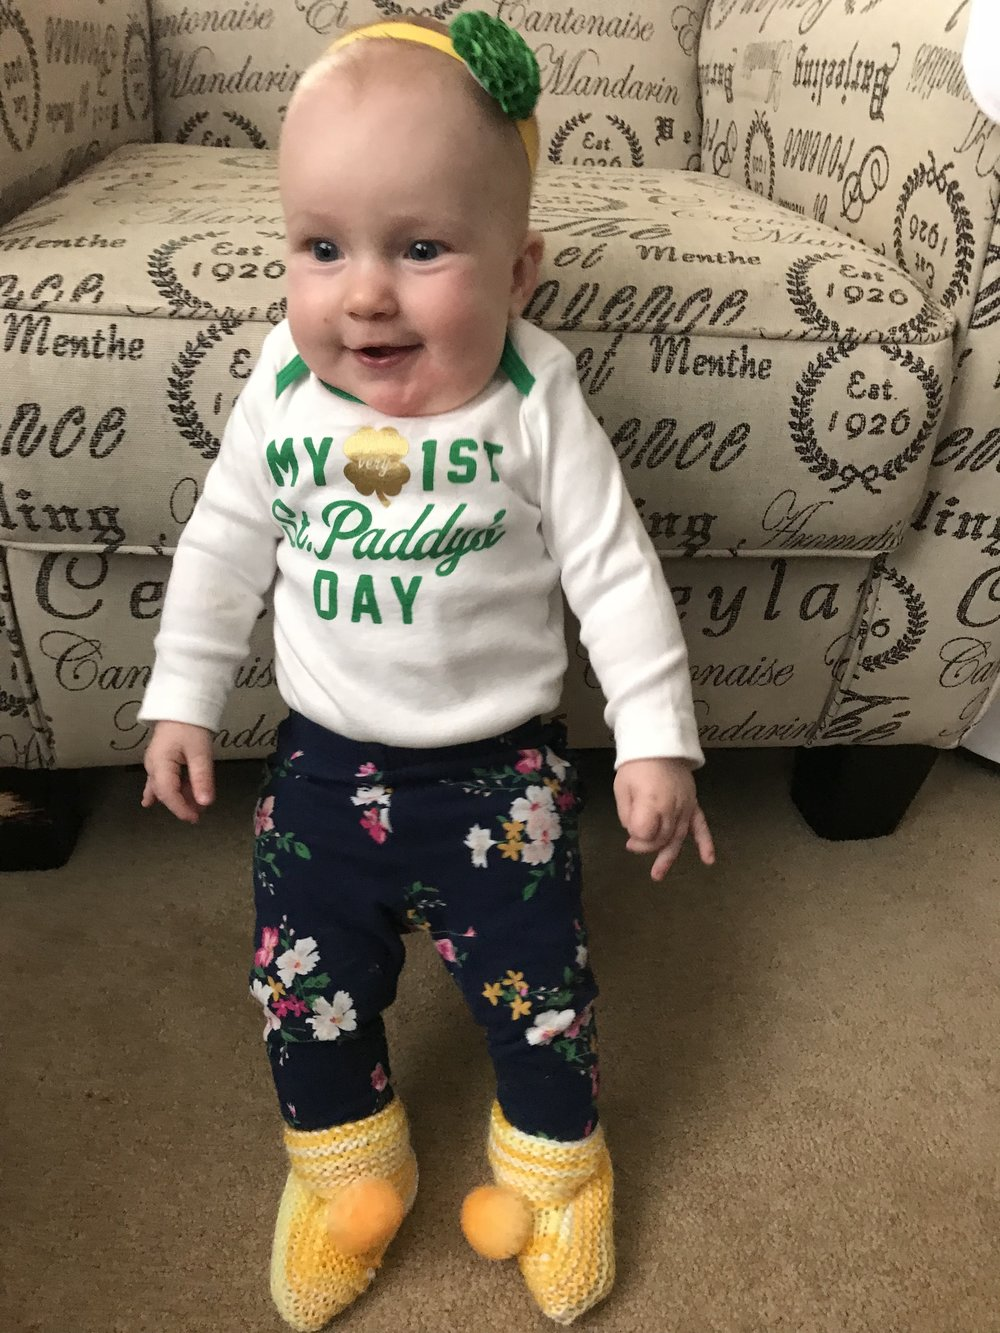 WIWW: St. Patrick's Day Outfit